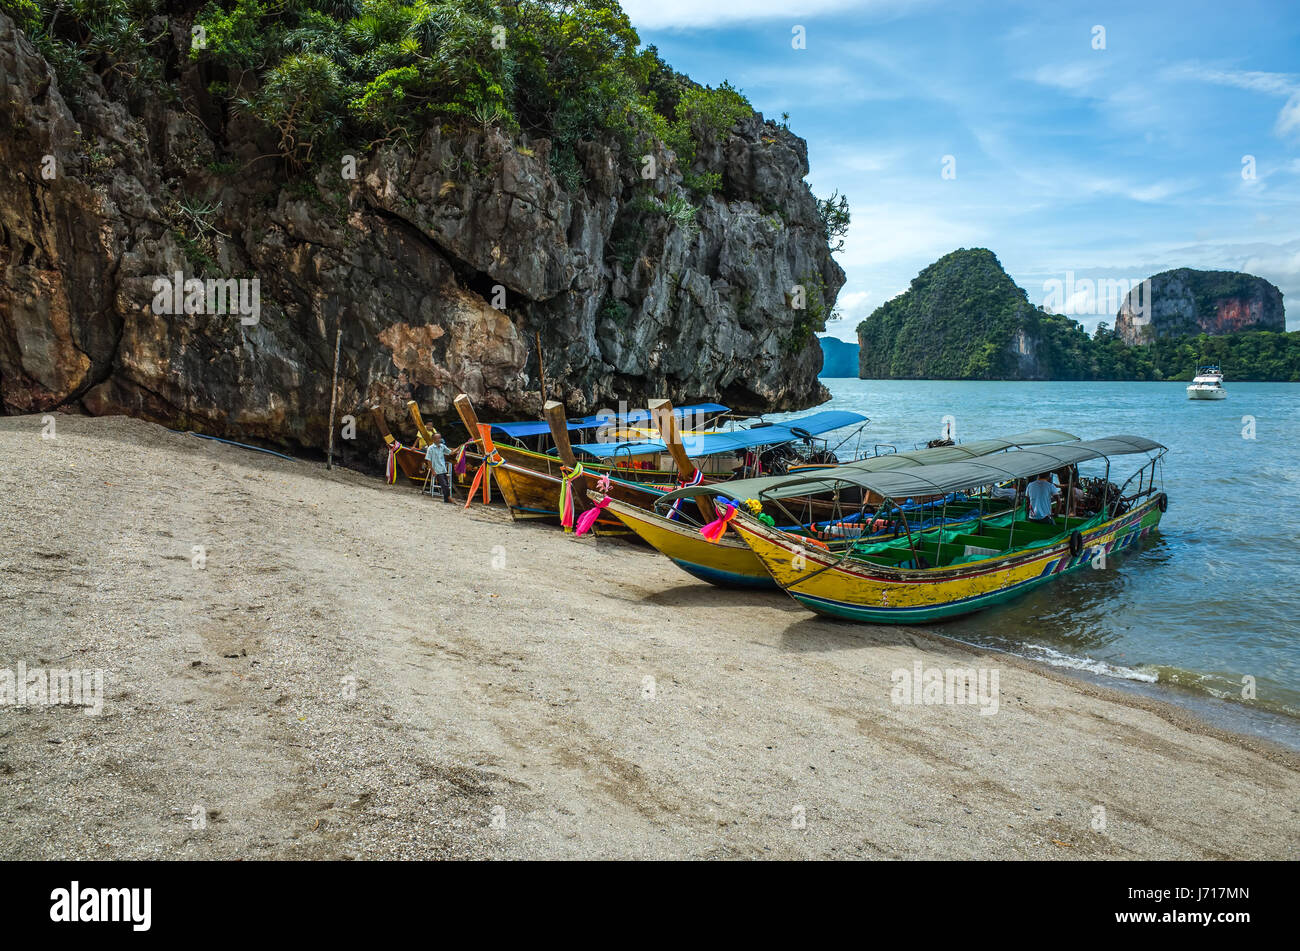 Boats on the shore of the beach, Thailand - Stock Image